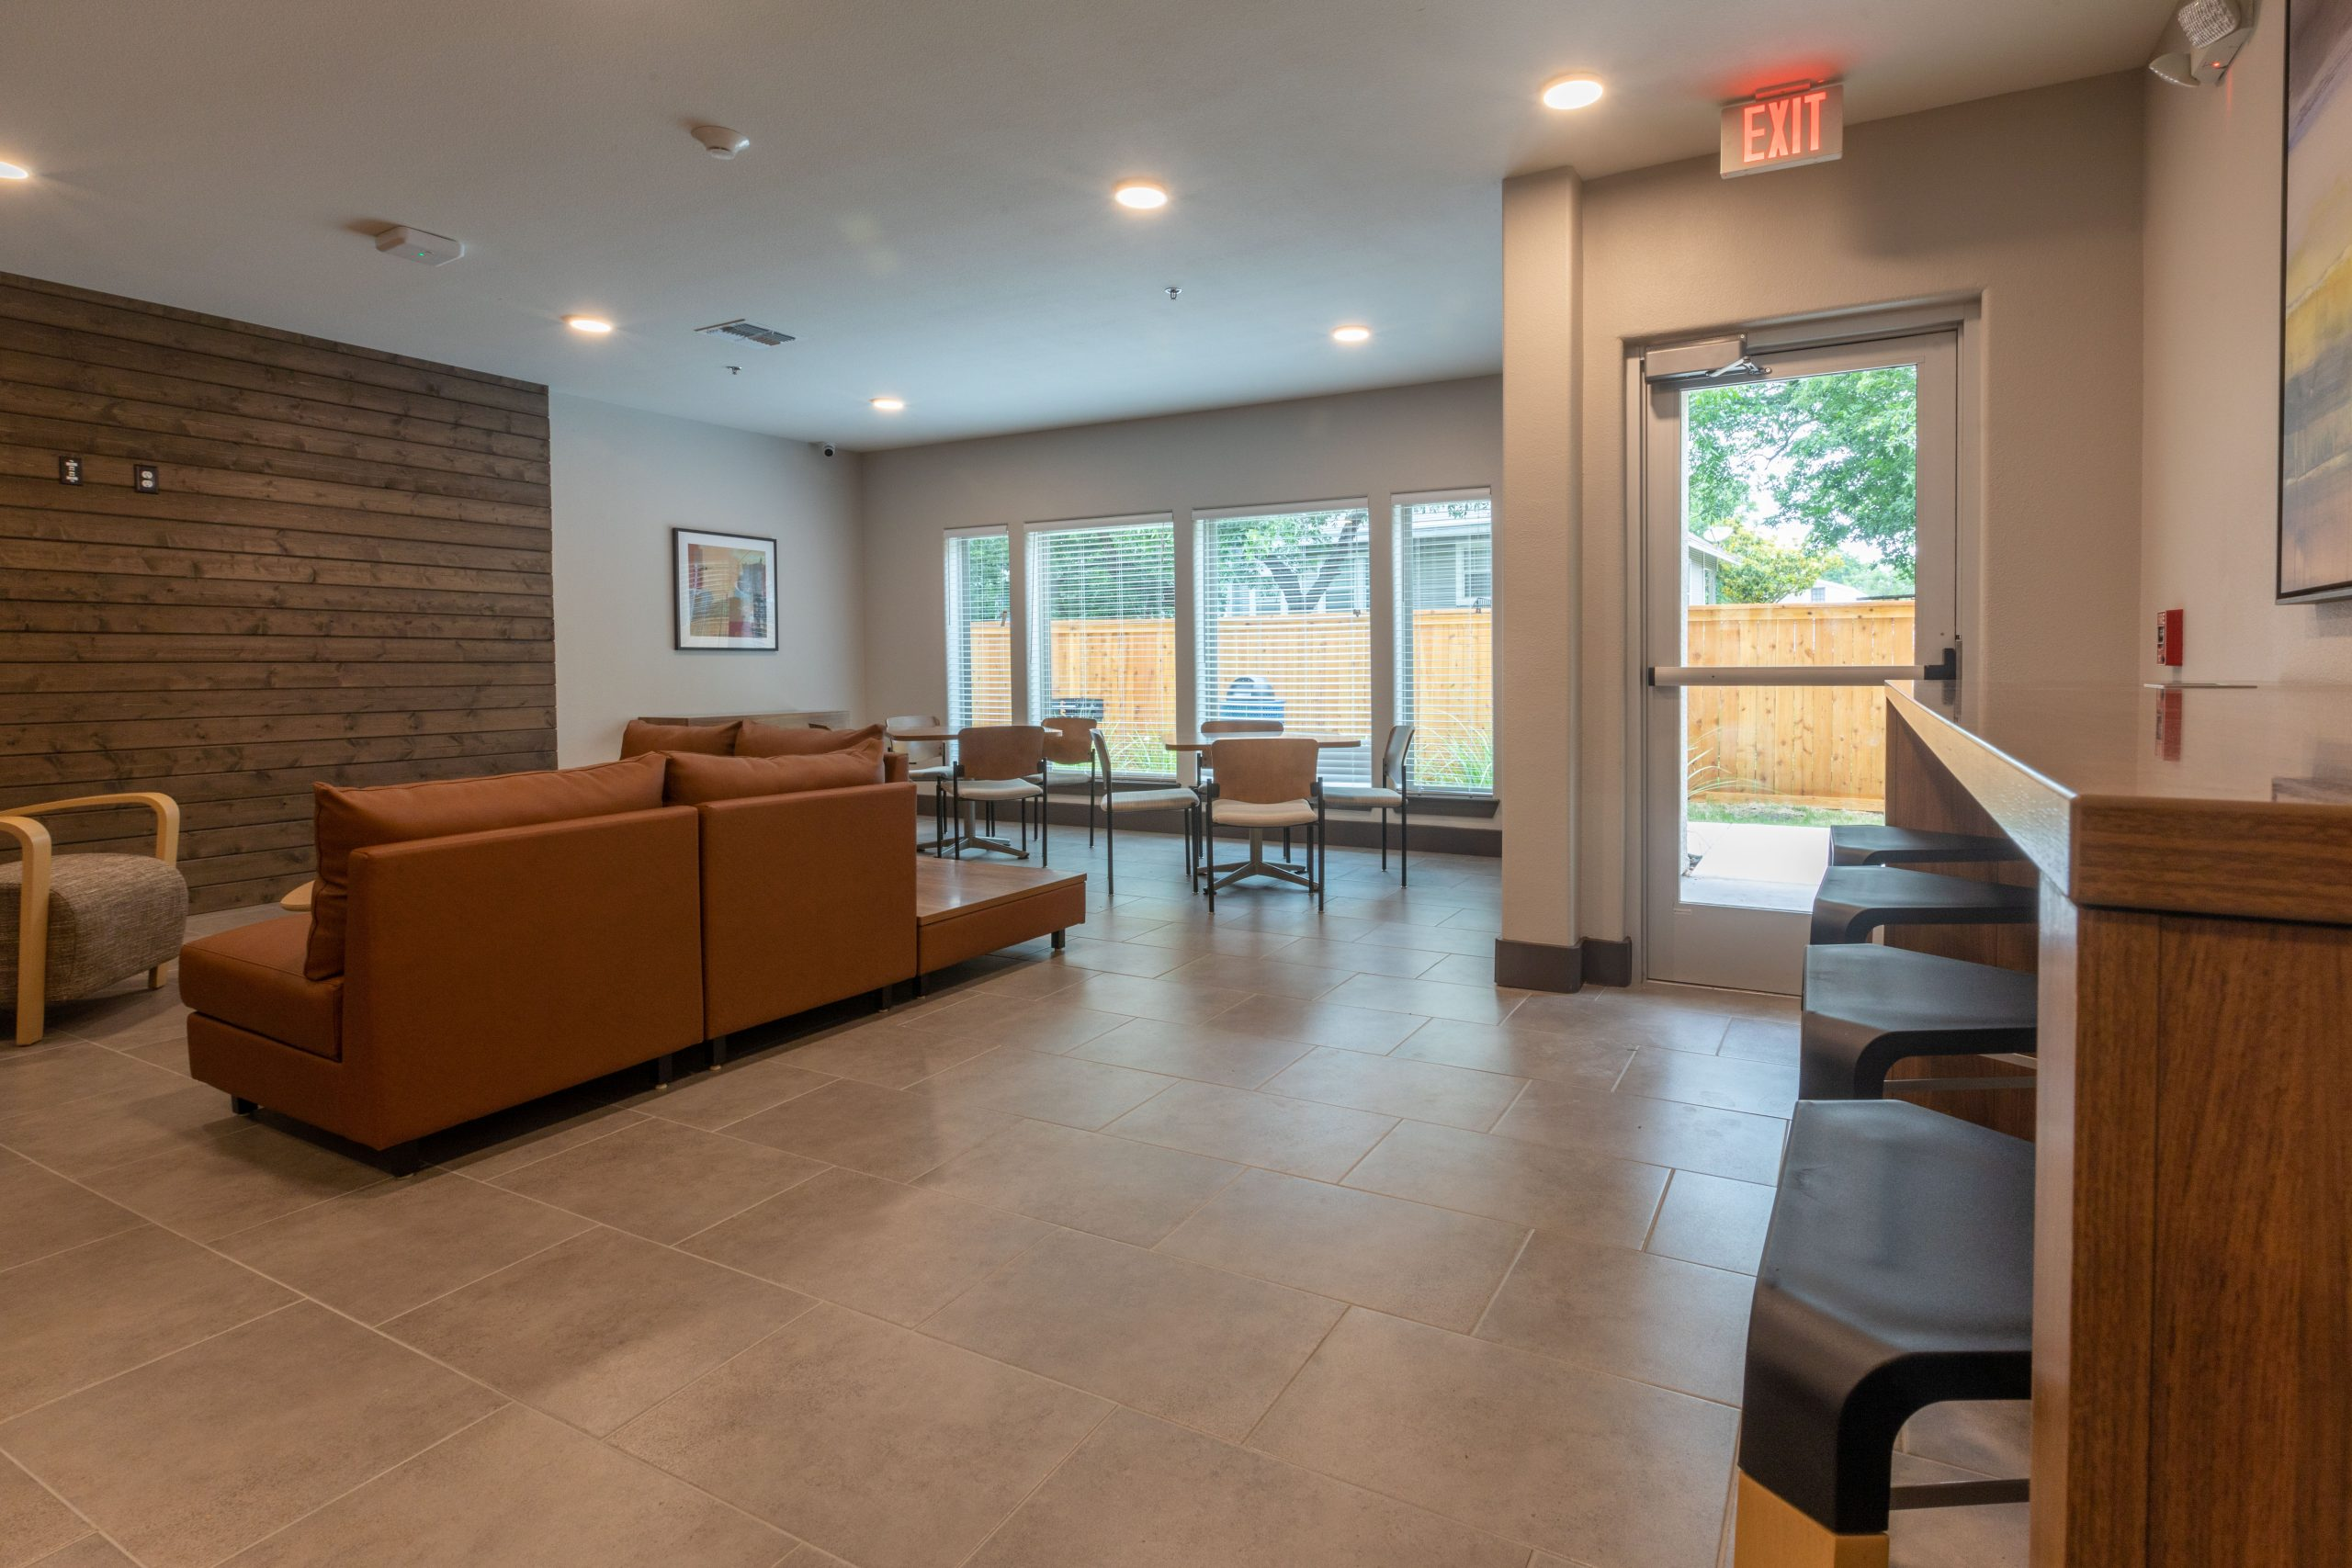 Countertop with stools in community room